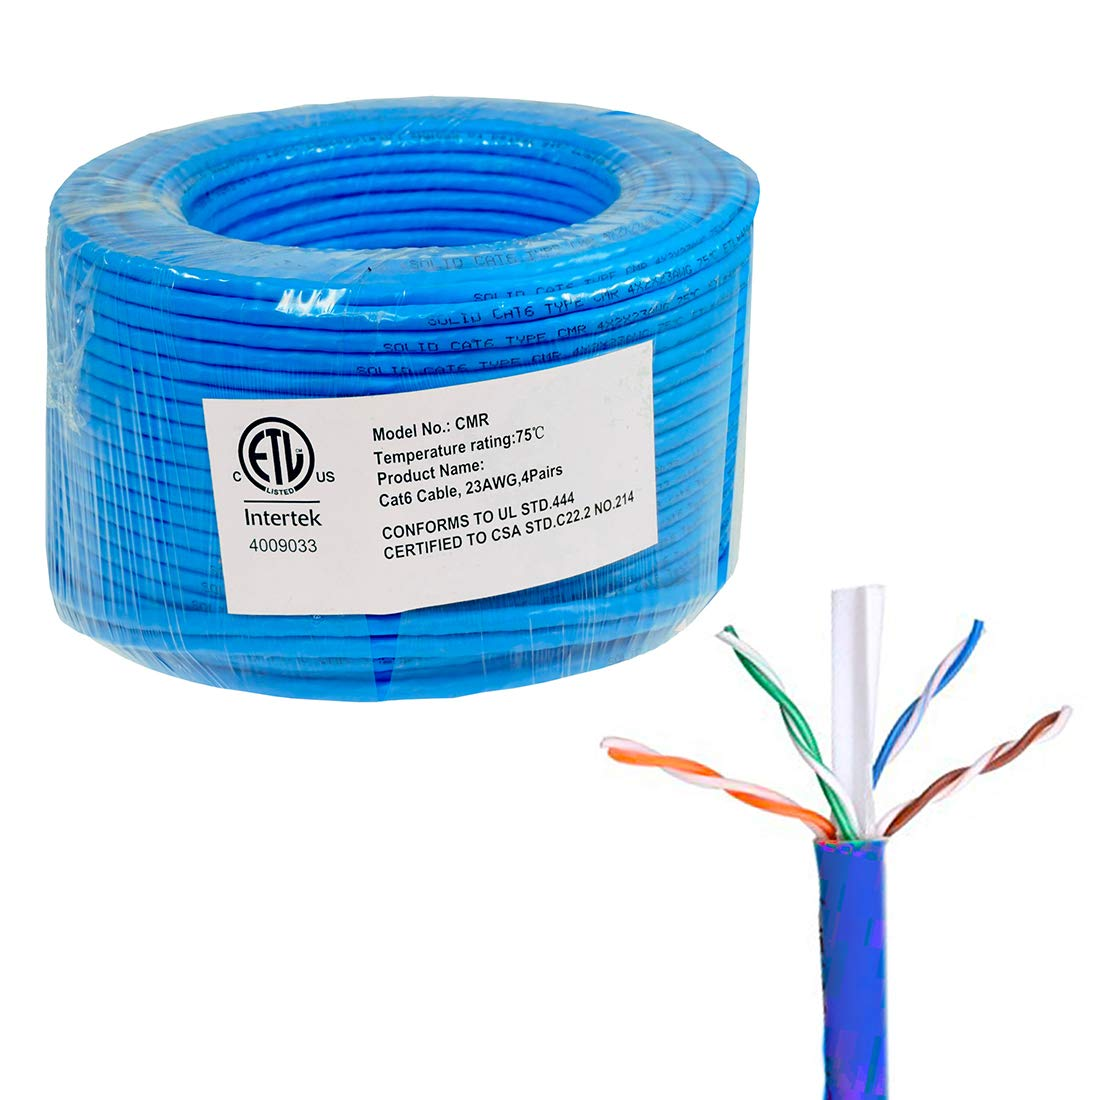 FiveStarCable 1000ft Cat6 CMR Riser Rated 23AWG 4 Twisted Pair Solid Bare Copper Conductor ETL Listed Ethernet Network LAN Cable PVC Red